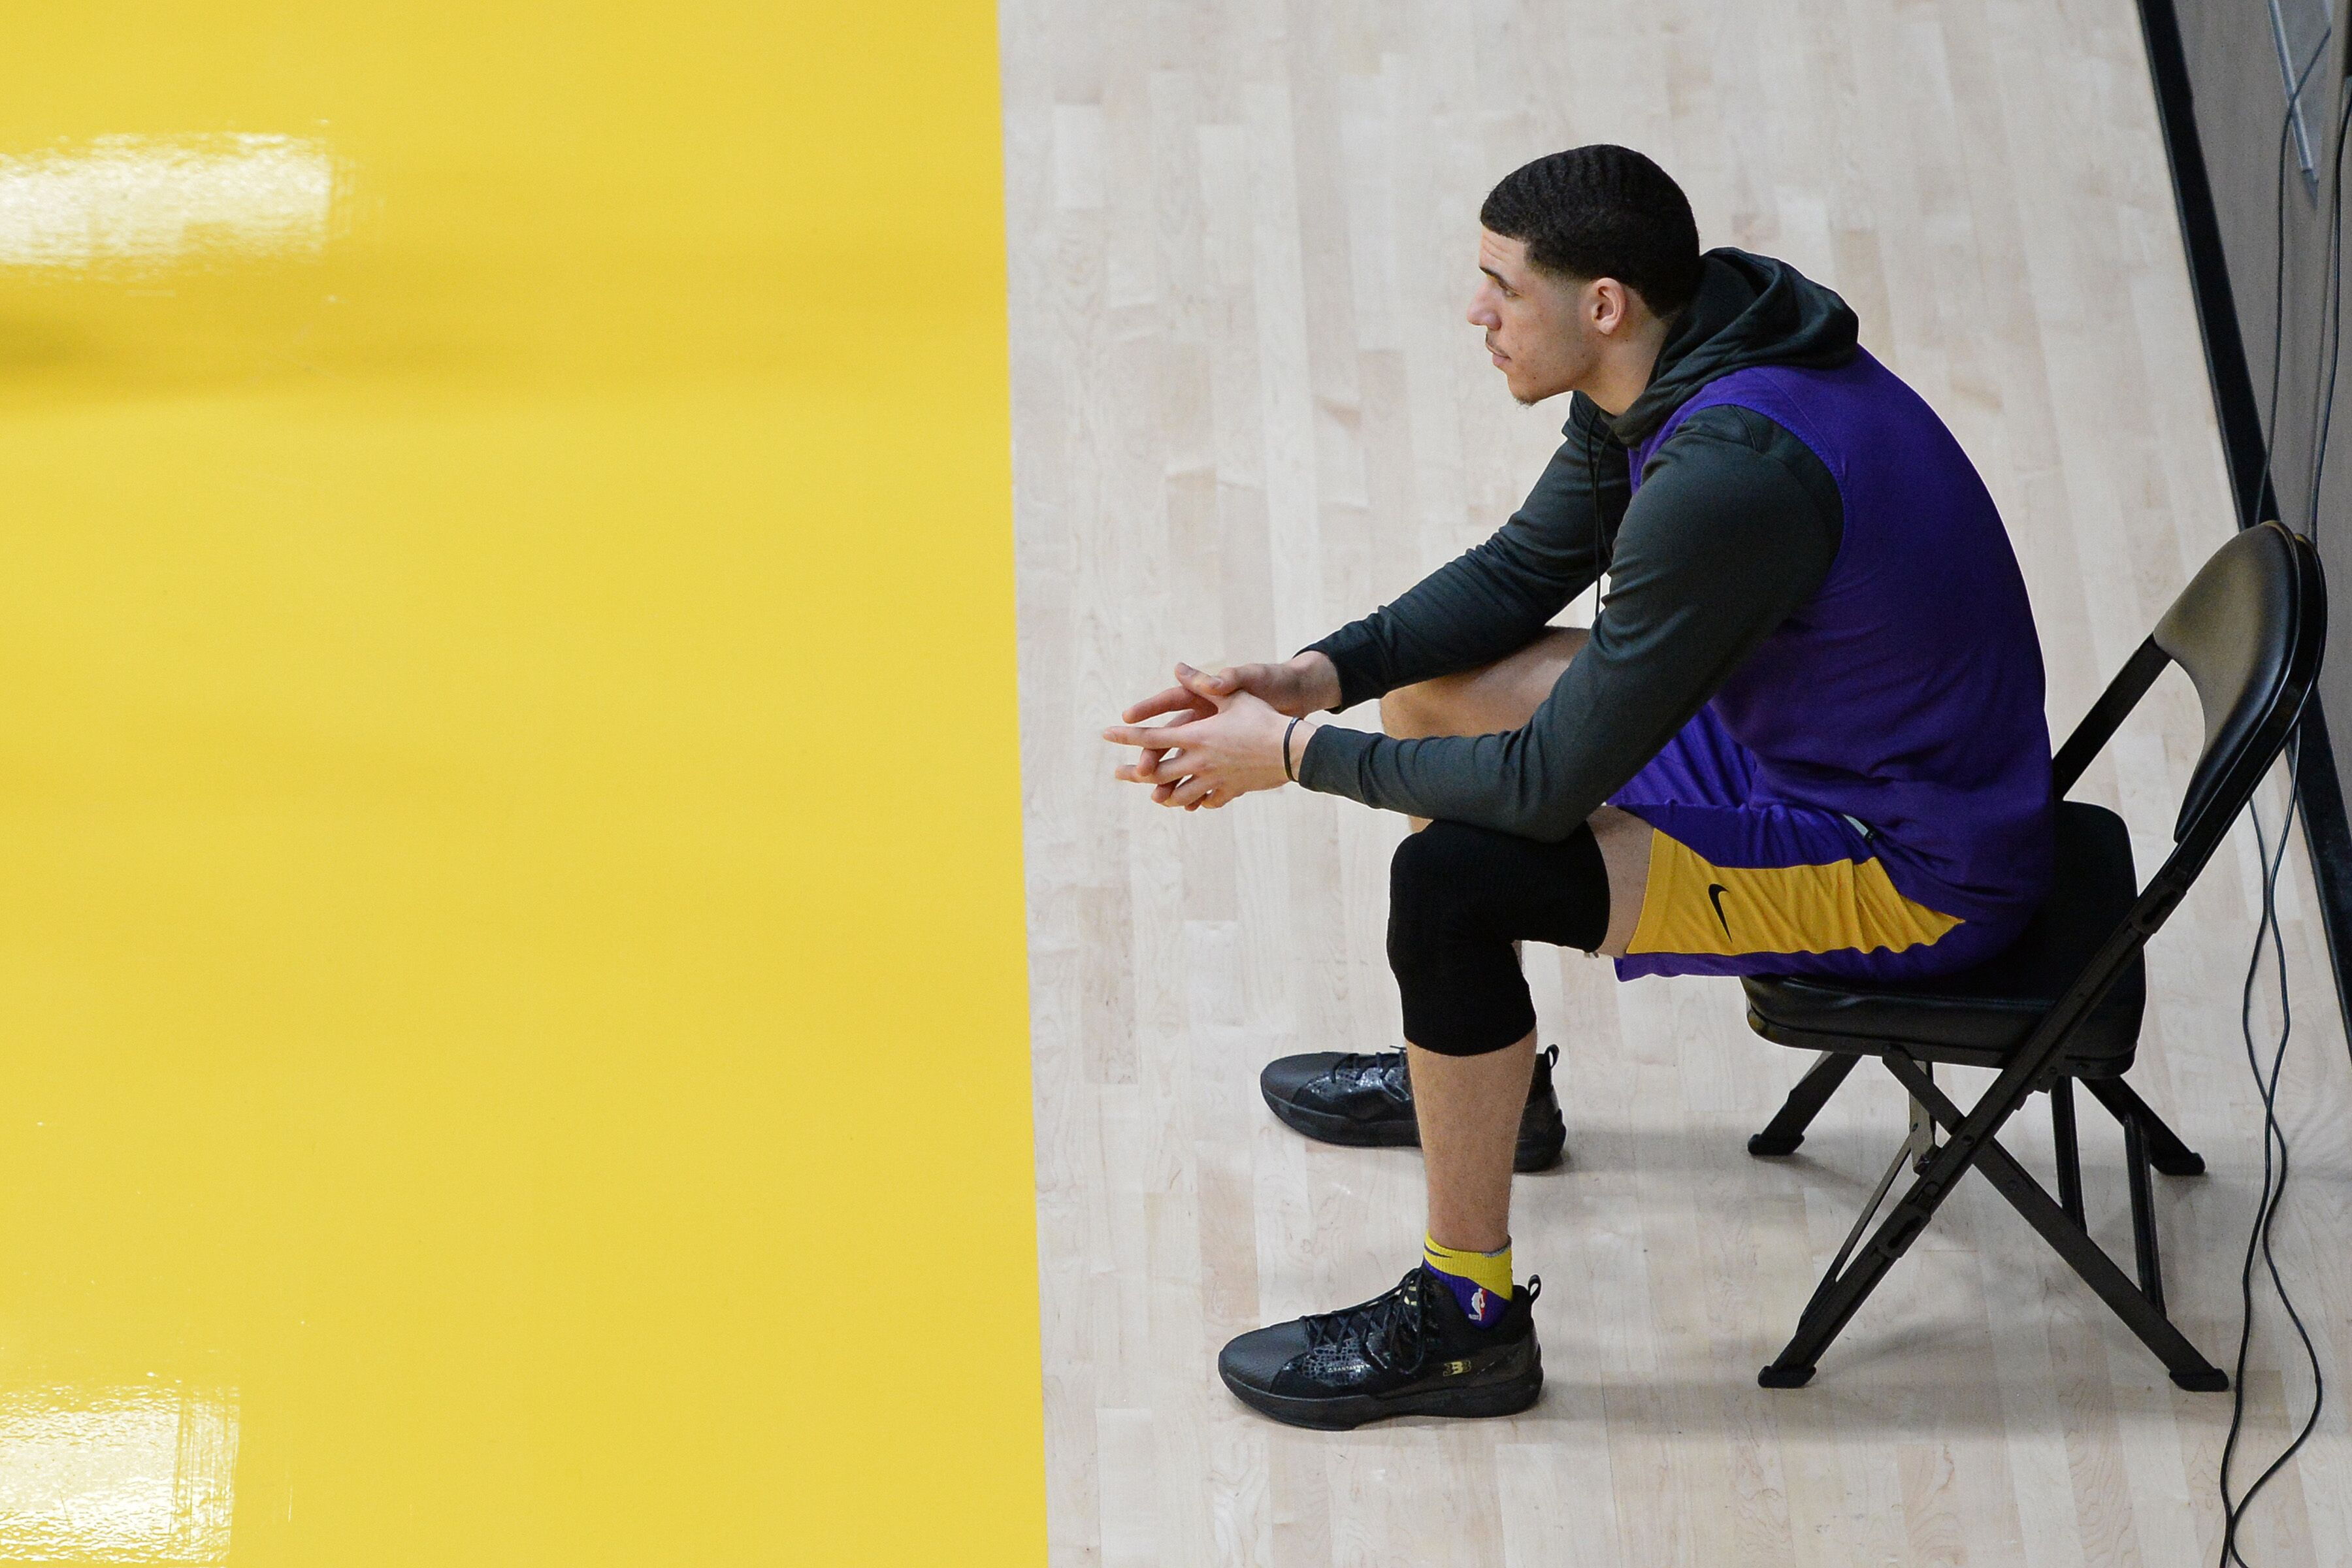 917842724-los-angeles-lakers-all-access-practice.jpg